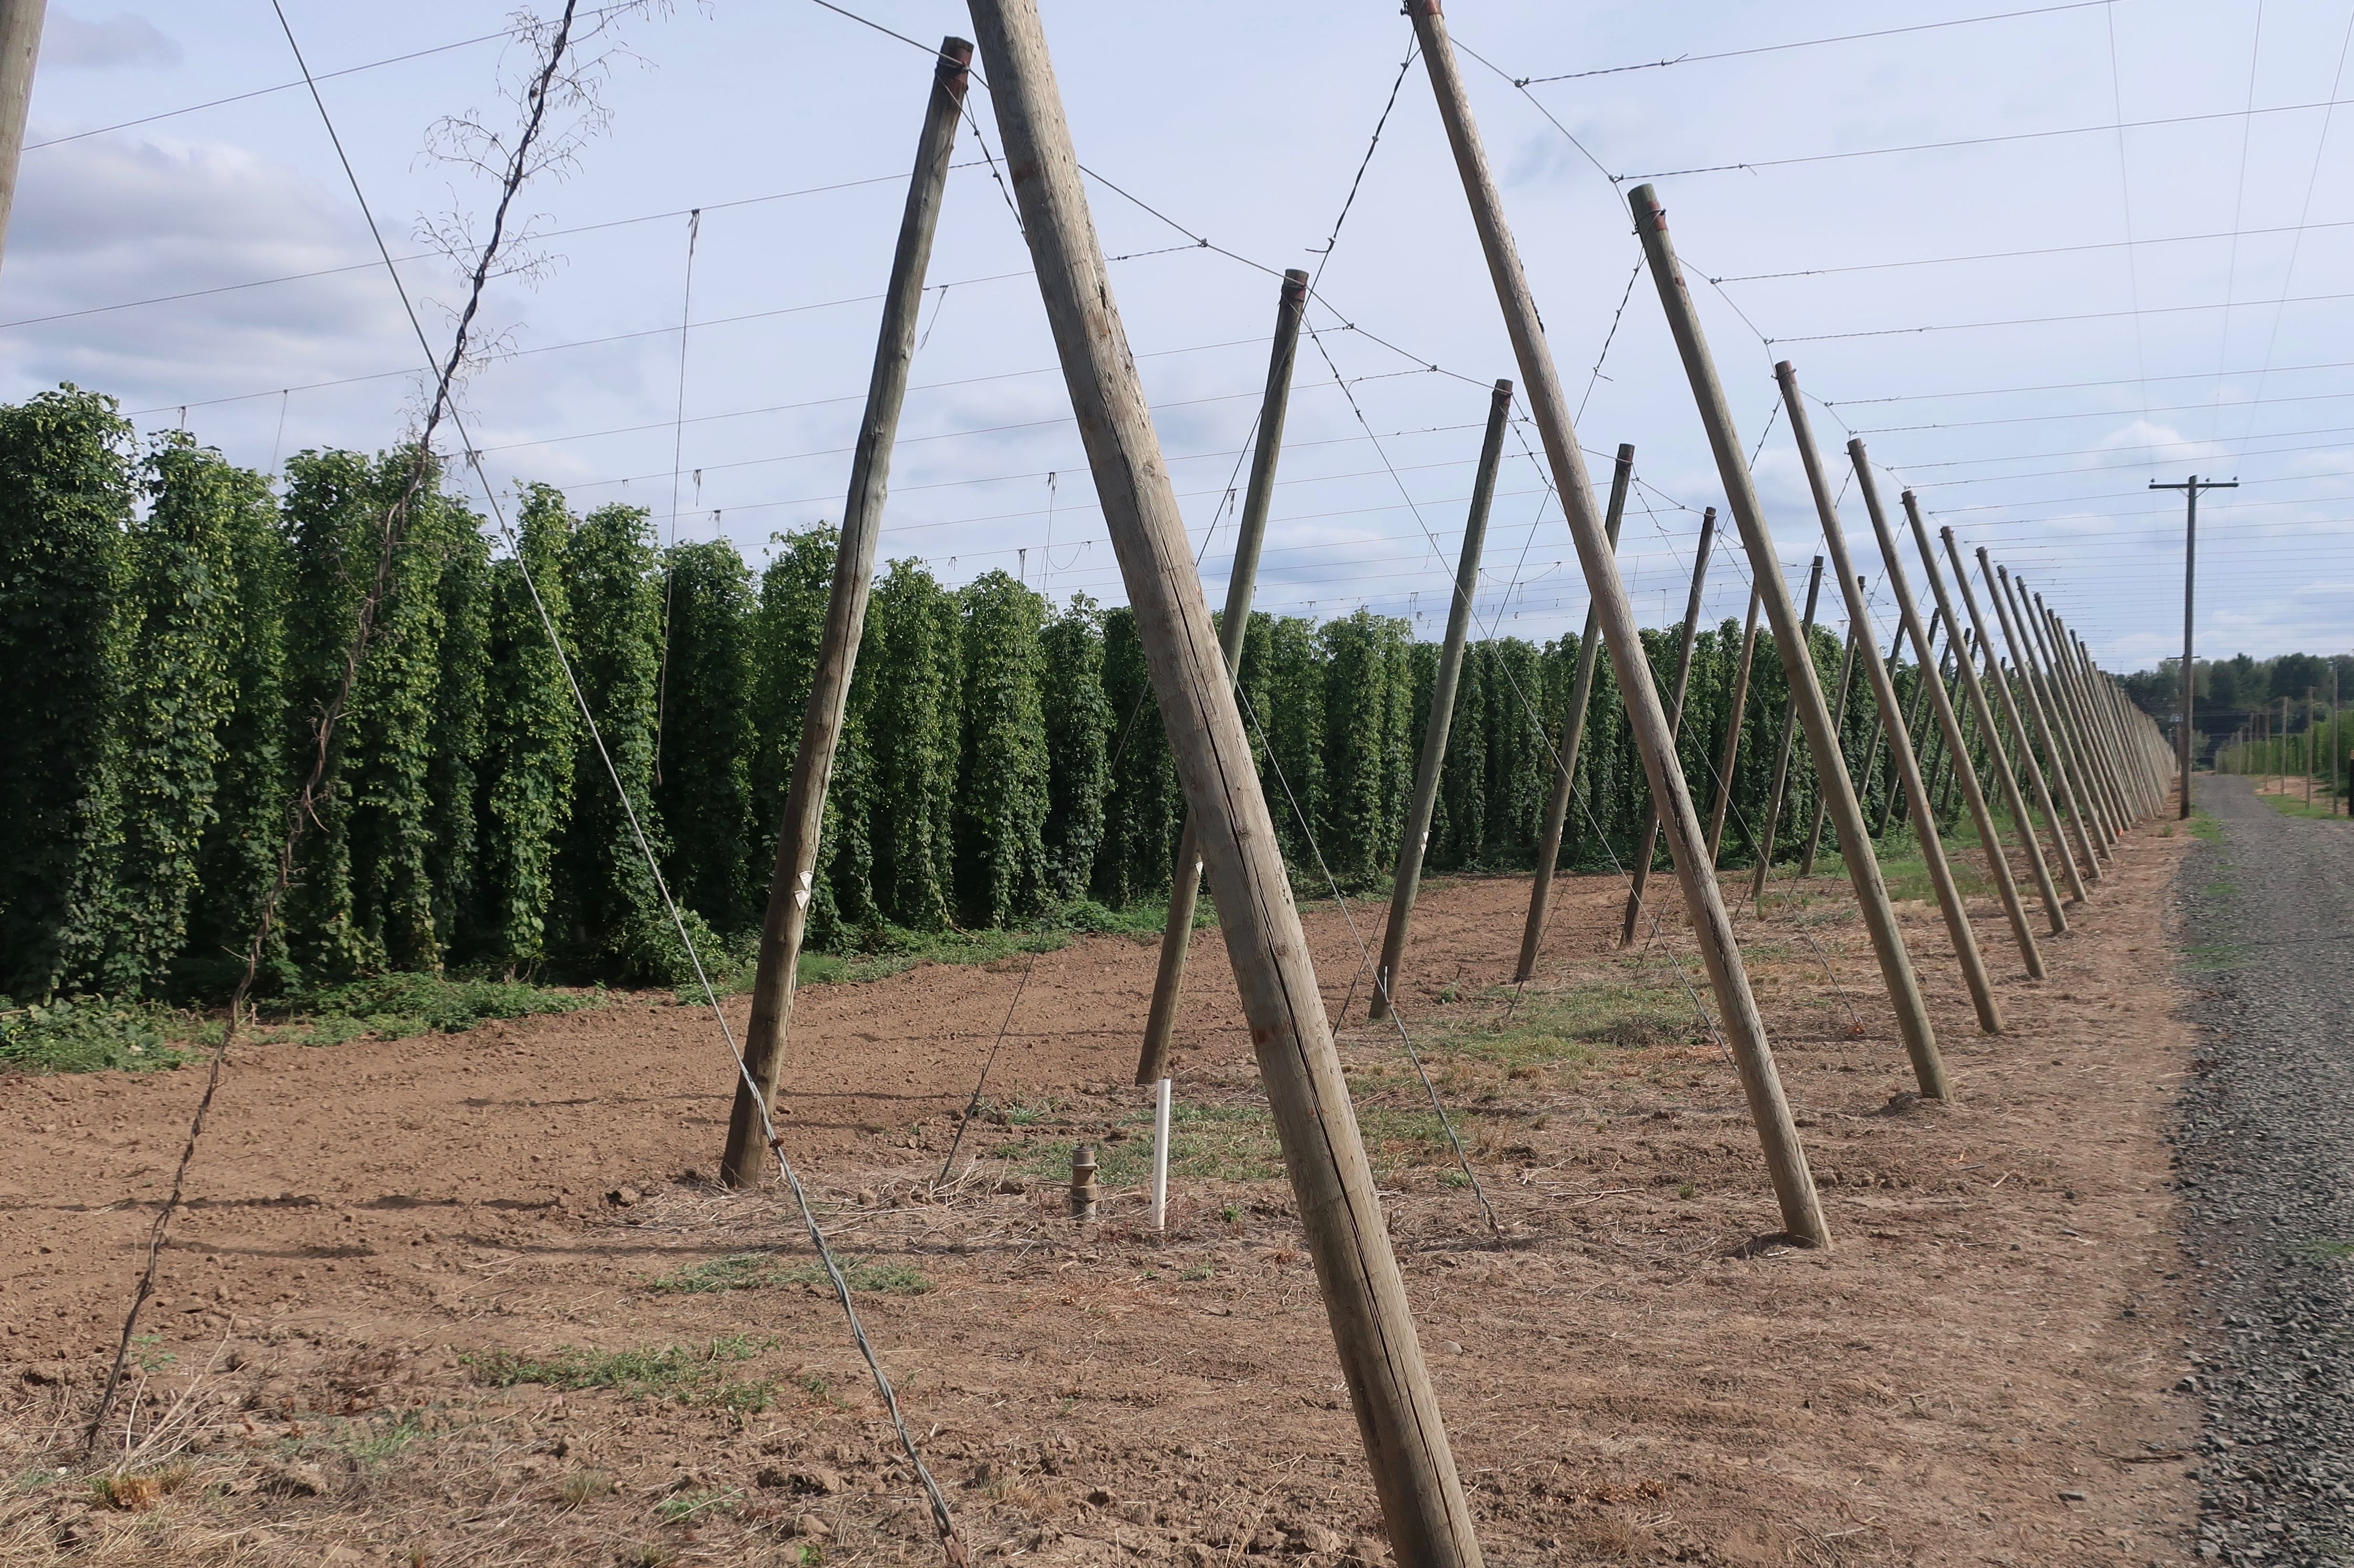 Fields of Strata hops growing at Coleman Agriculture outside of Independence, Oregon.